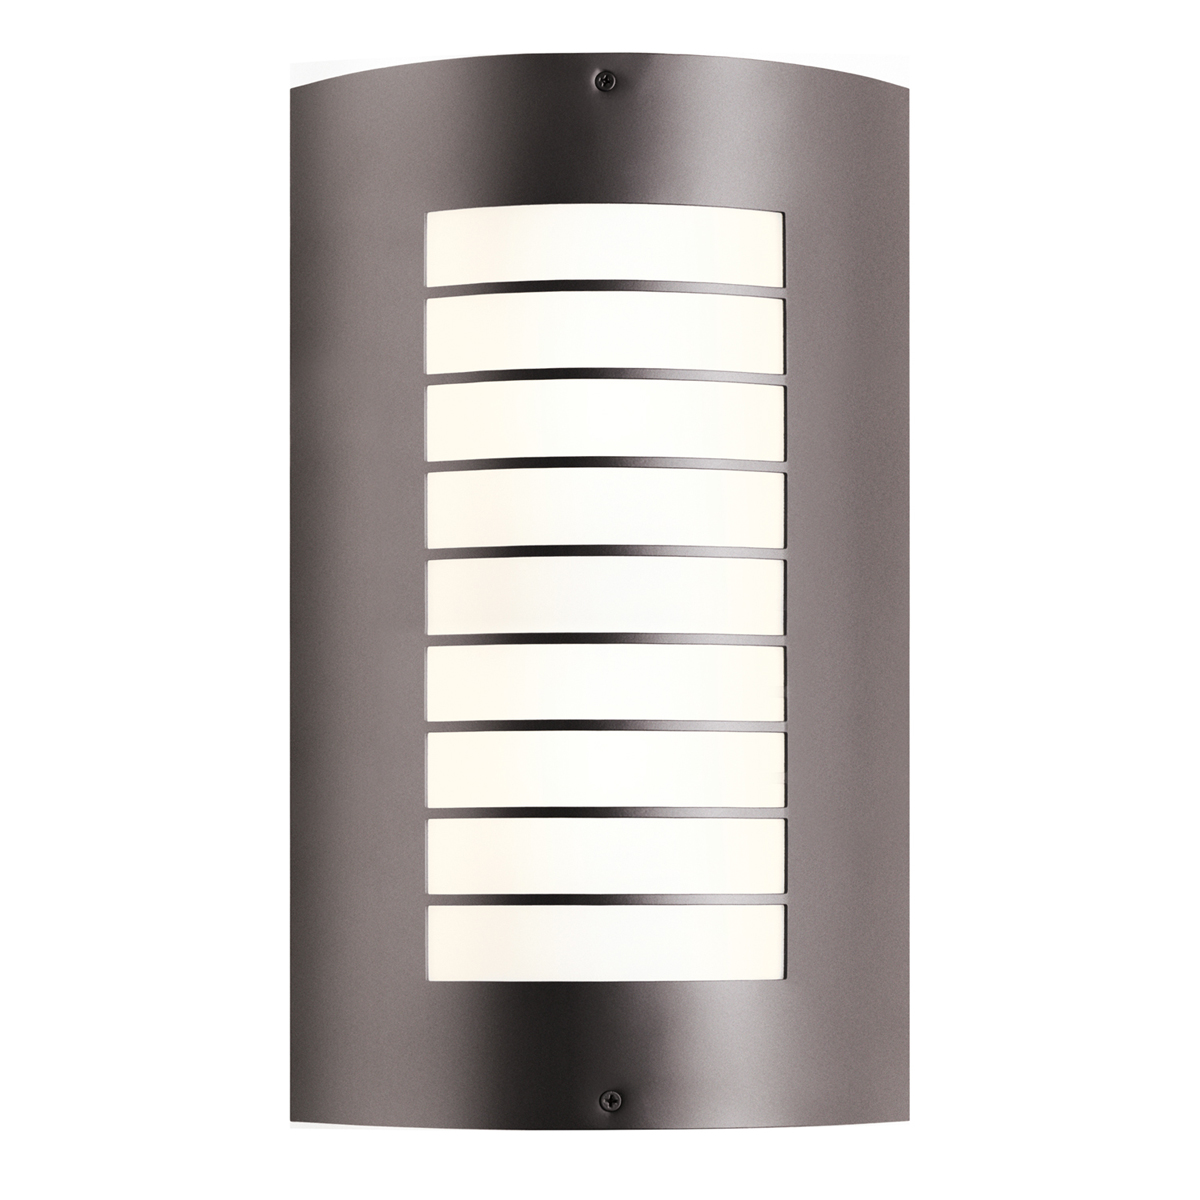 Big Outside Wall Lights : Kichler Lighting (6048AZ) Newport 2-Light Large Outdoor Wall Sconce in Architectural Bronze